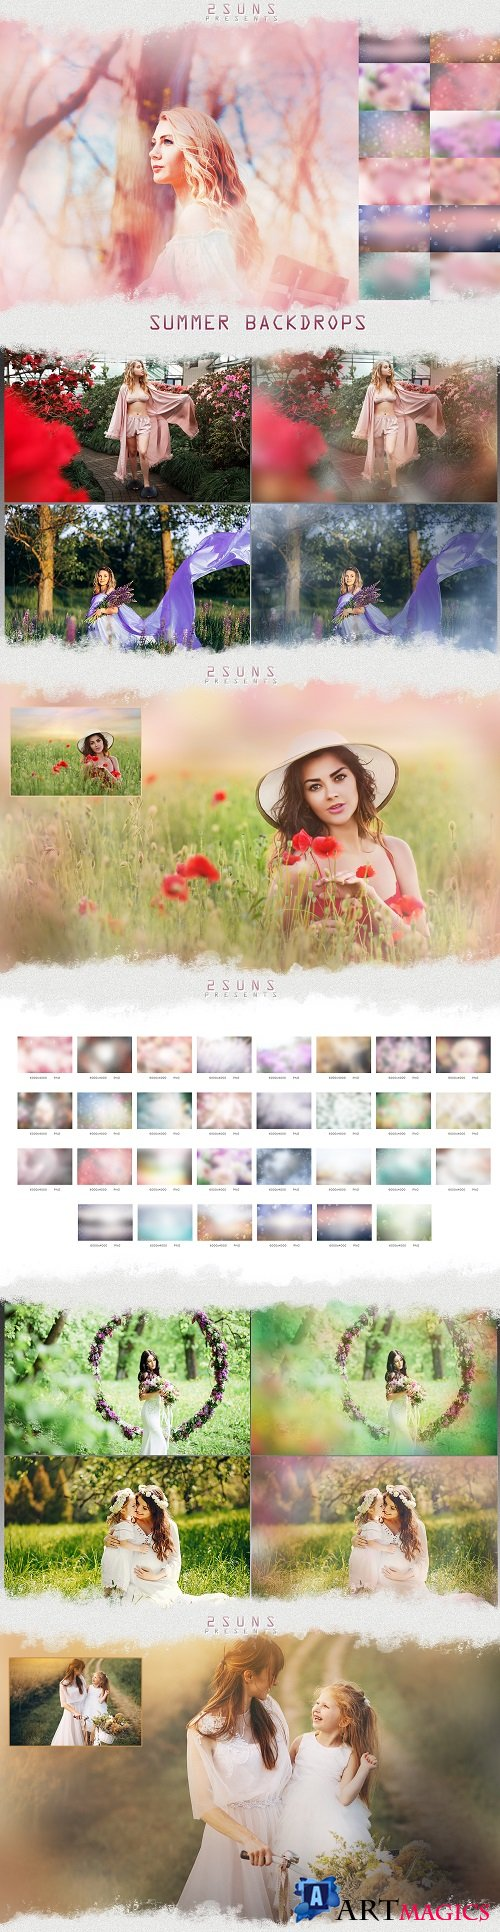 Photo overlays Summer Backdrops pastel photoshop 267931